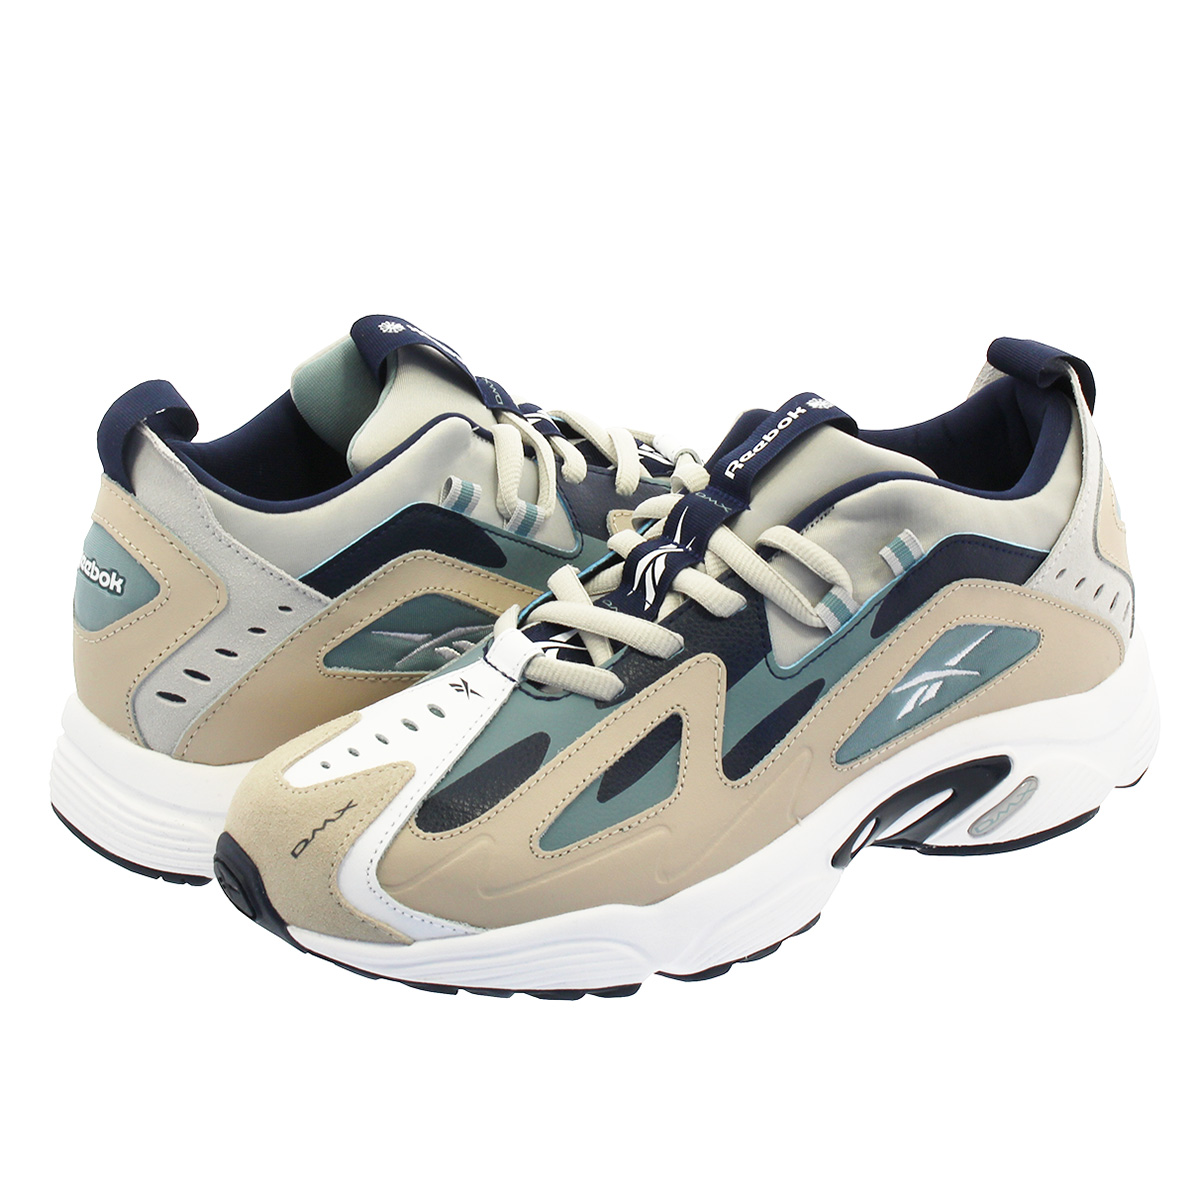 SELECT SHOP LOWTEX  Reebok DMX SERIES 1200 Reebok DMX series 1200 LIGHT  SAND TEAL FOG COLLEGE NAVY cn7588  45ac9d808